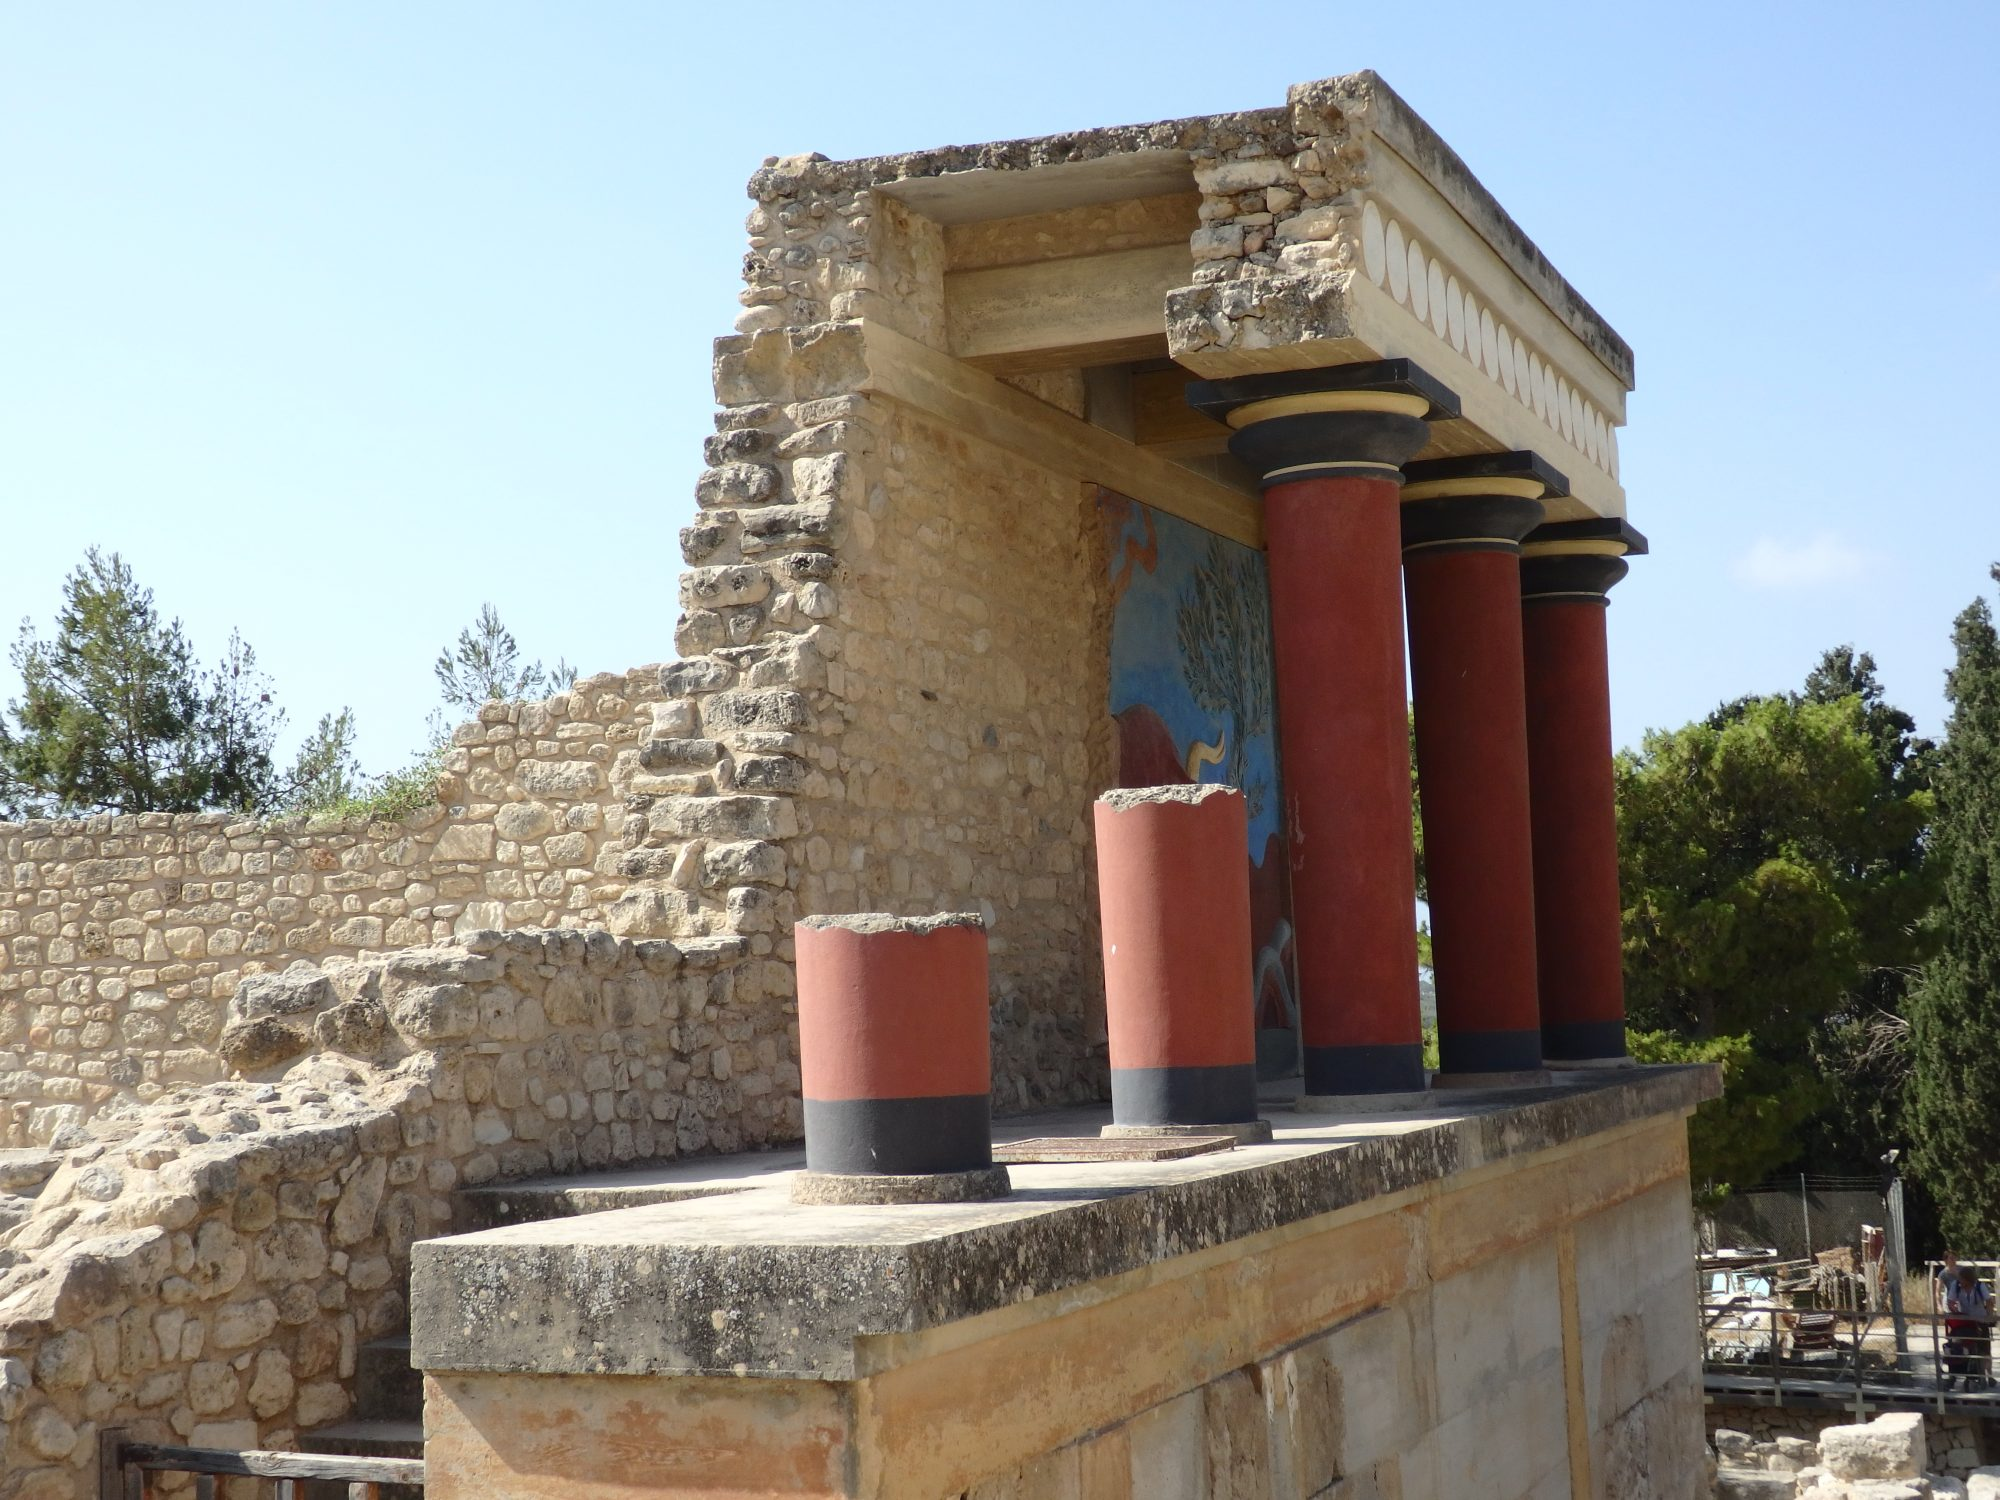 one of the reconstructed building fragments at Knossos, with a replica fresco